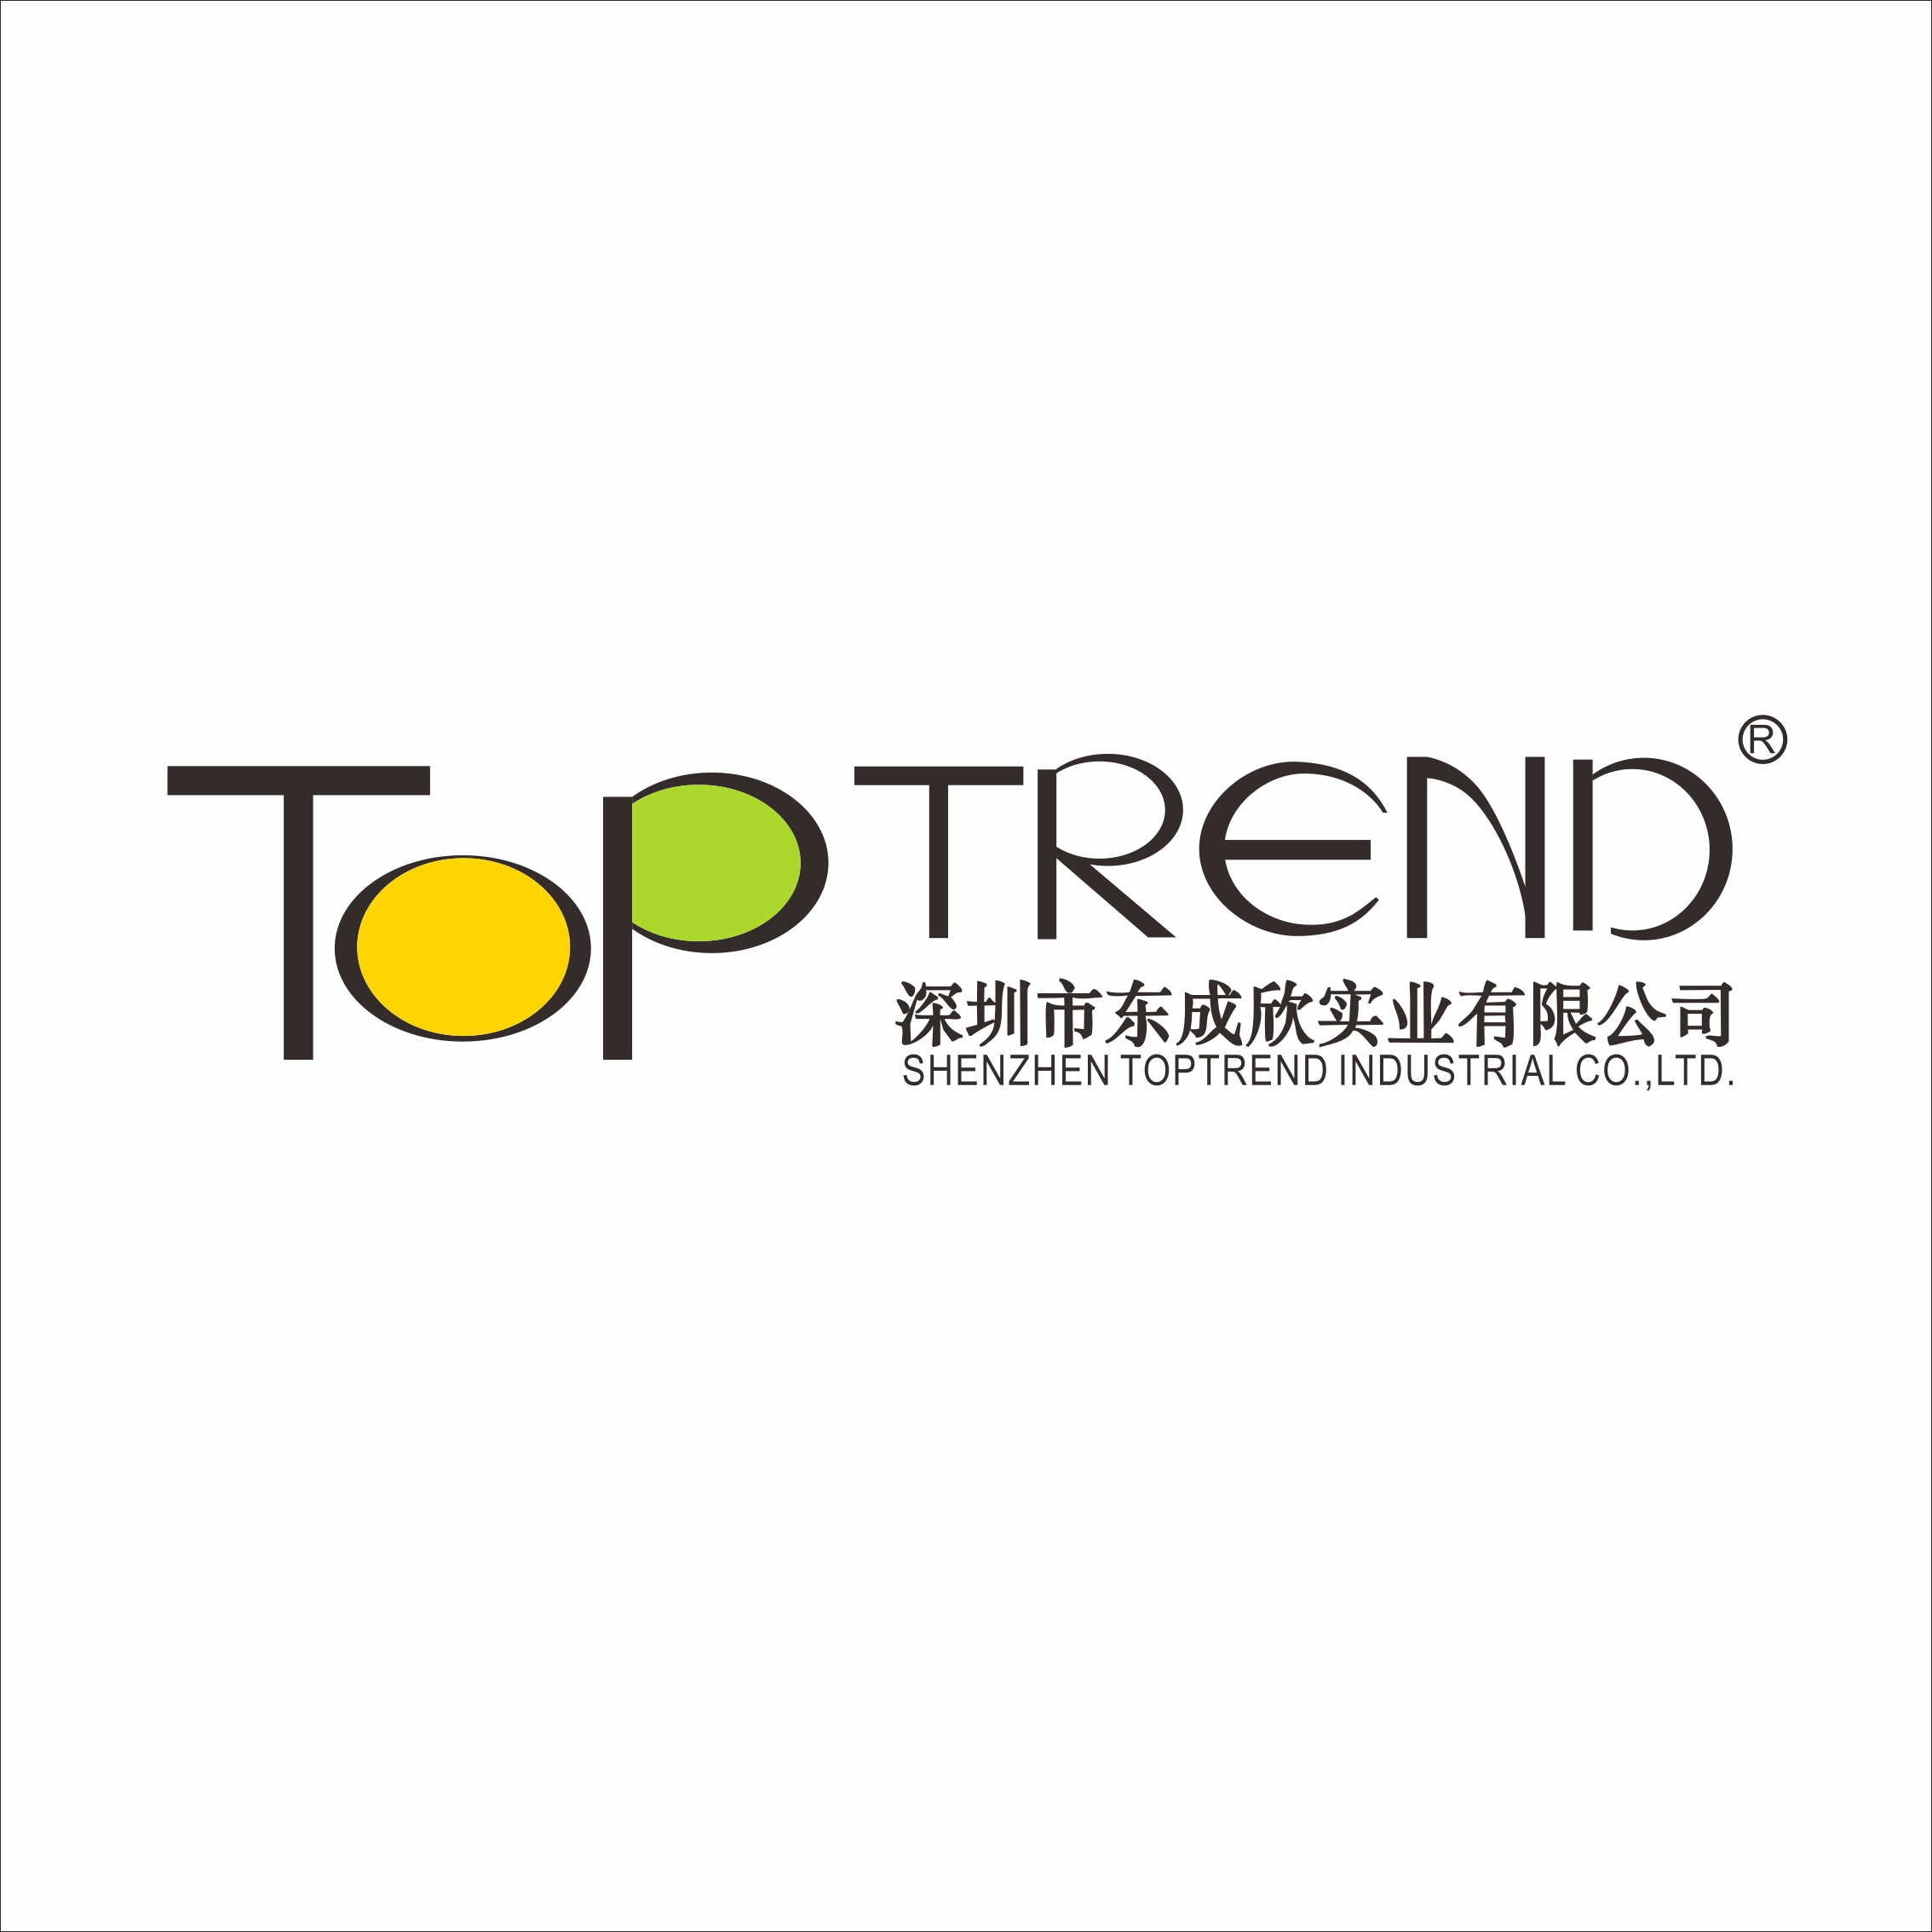 SHENZHEN TOPTREND INDUSTRIAL CO., LTD.